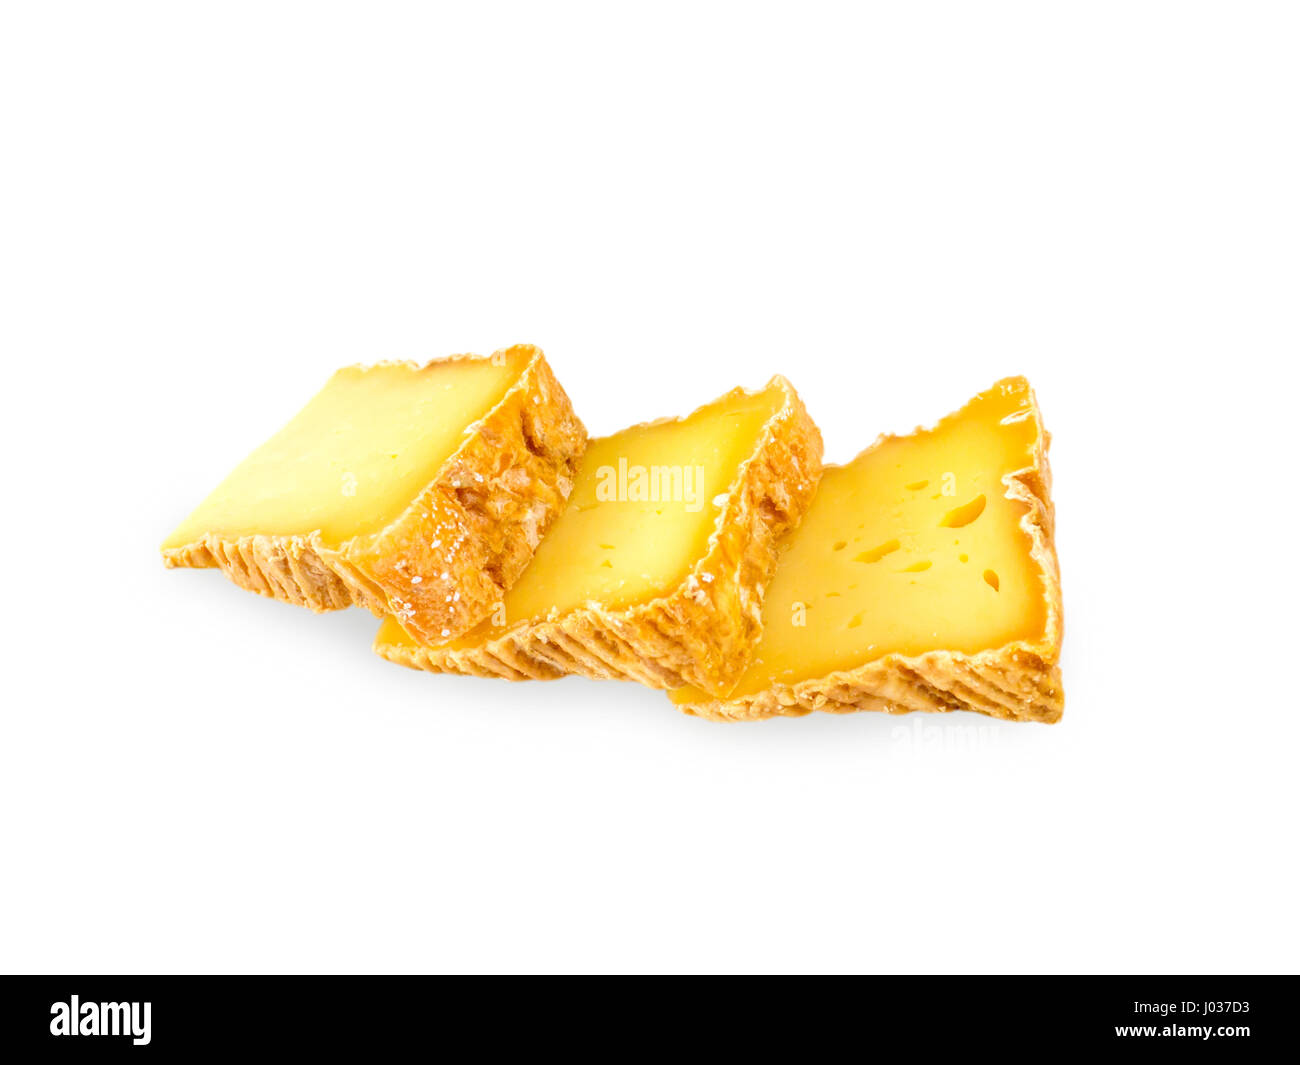 Three soft washed-rind cheese slices isolated on white - Stock Image